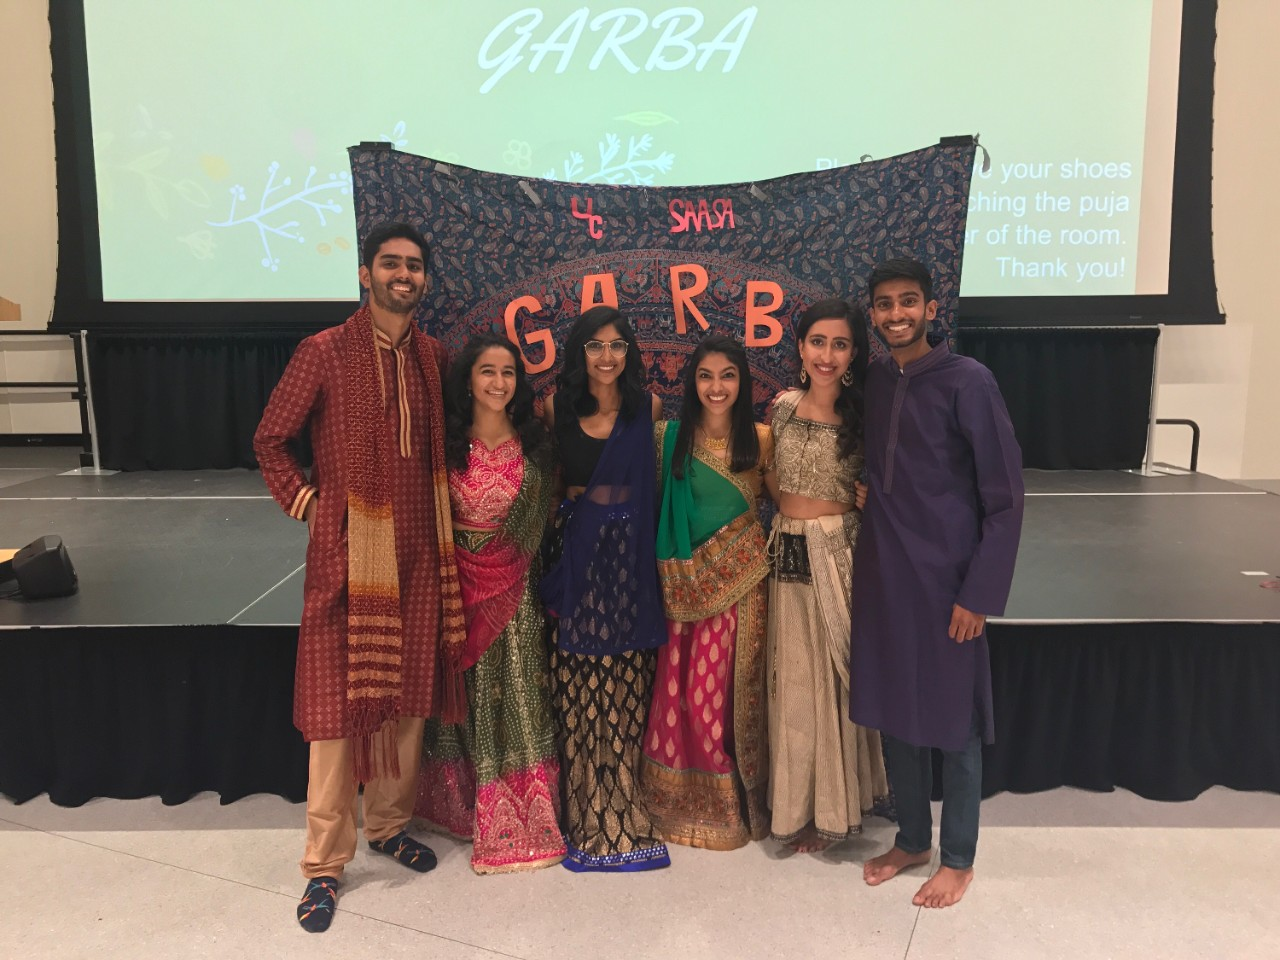 Rahul Sandella is shown with five other UC students at a Garba event.